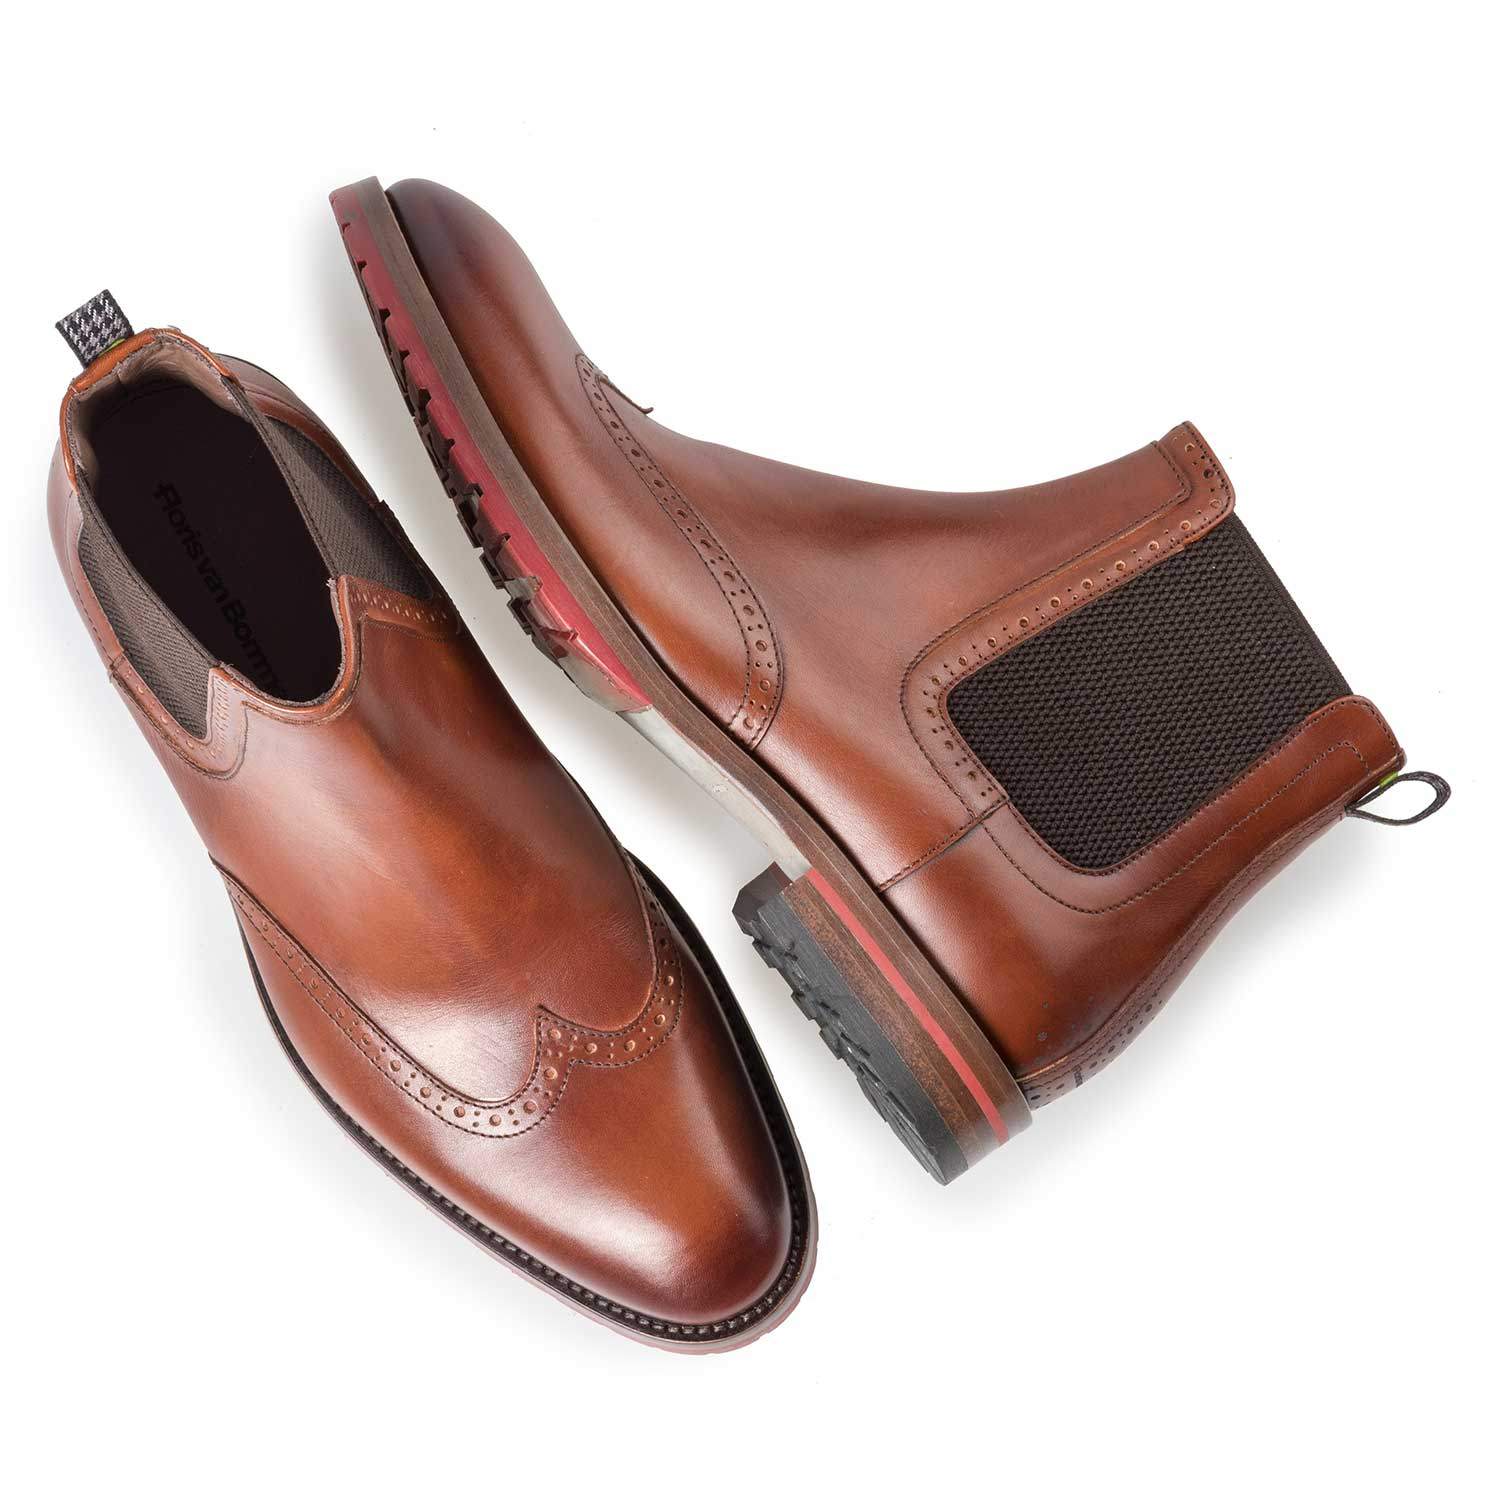 10329/03 - Dark cognac-coloured calf's leather Chelsea boot